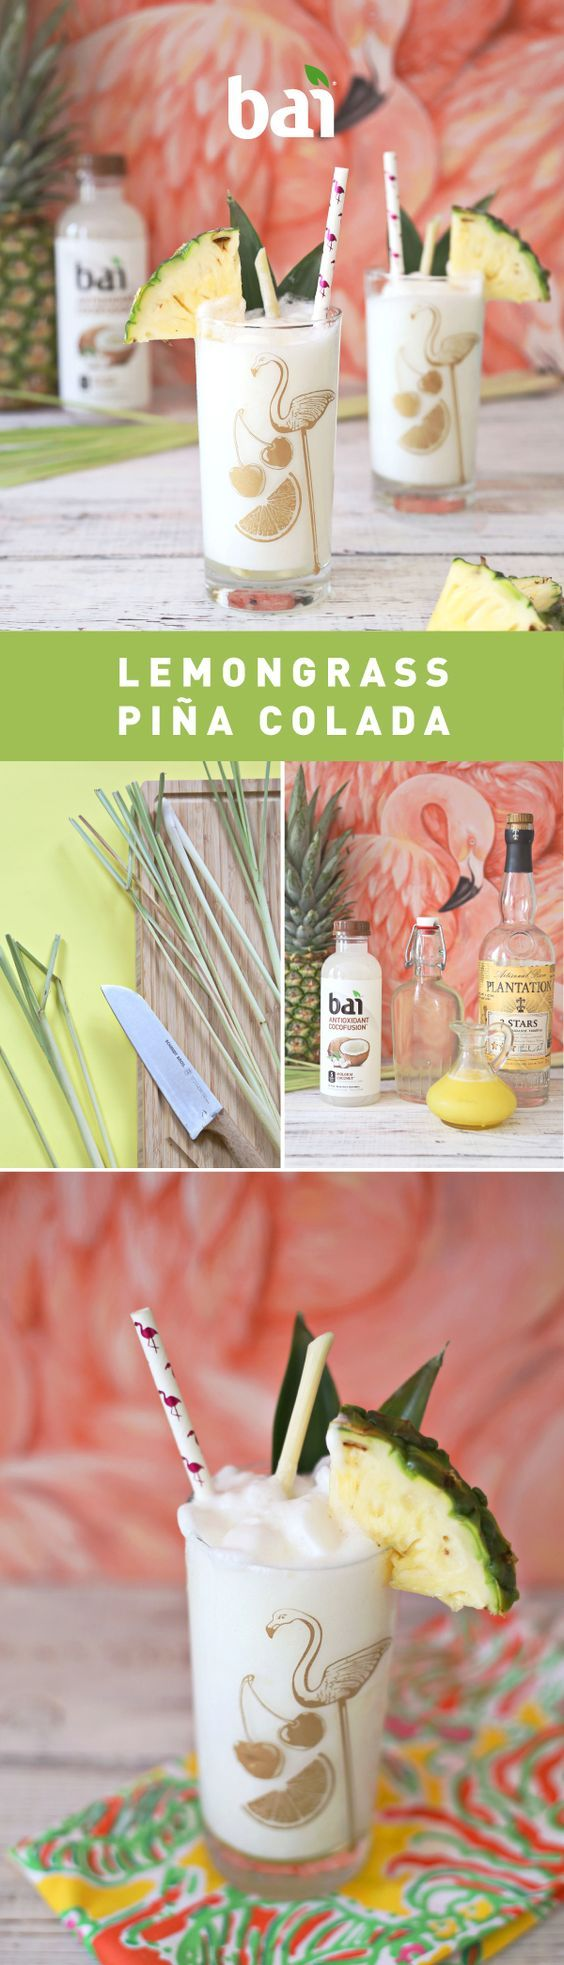 This Pina Colada recipe is the perfect blend of Pineapple flavor that will bring your guests' taste buds to the beach. Must be 21+. Please drink responsibly.